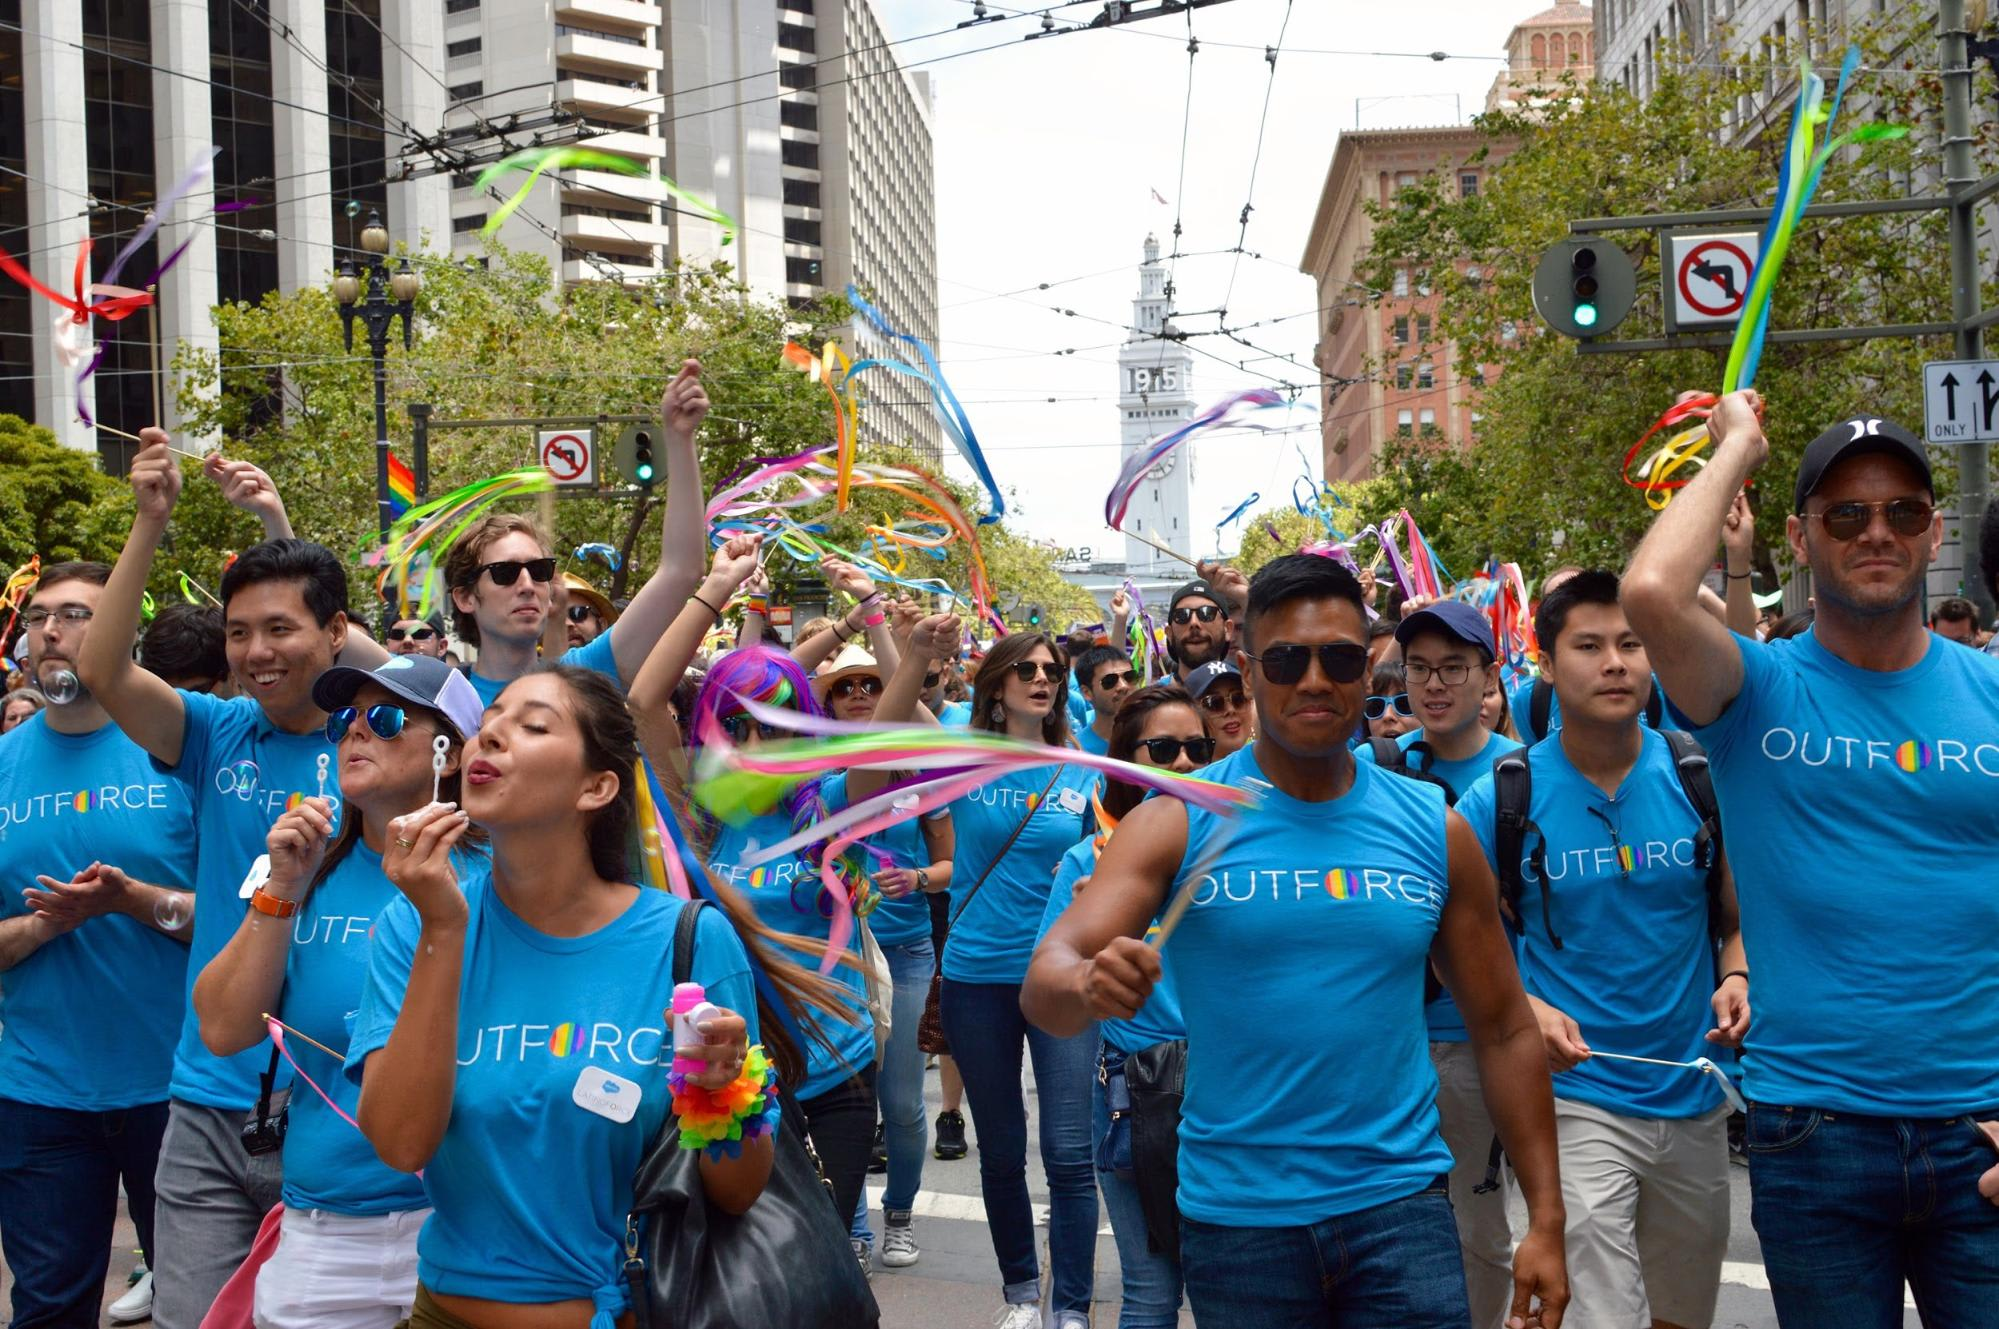 Picture of a Pride parade, with people marching in Outforce tshirts, blowing bubbles, and waving streamers